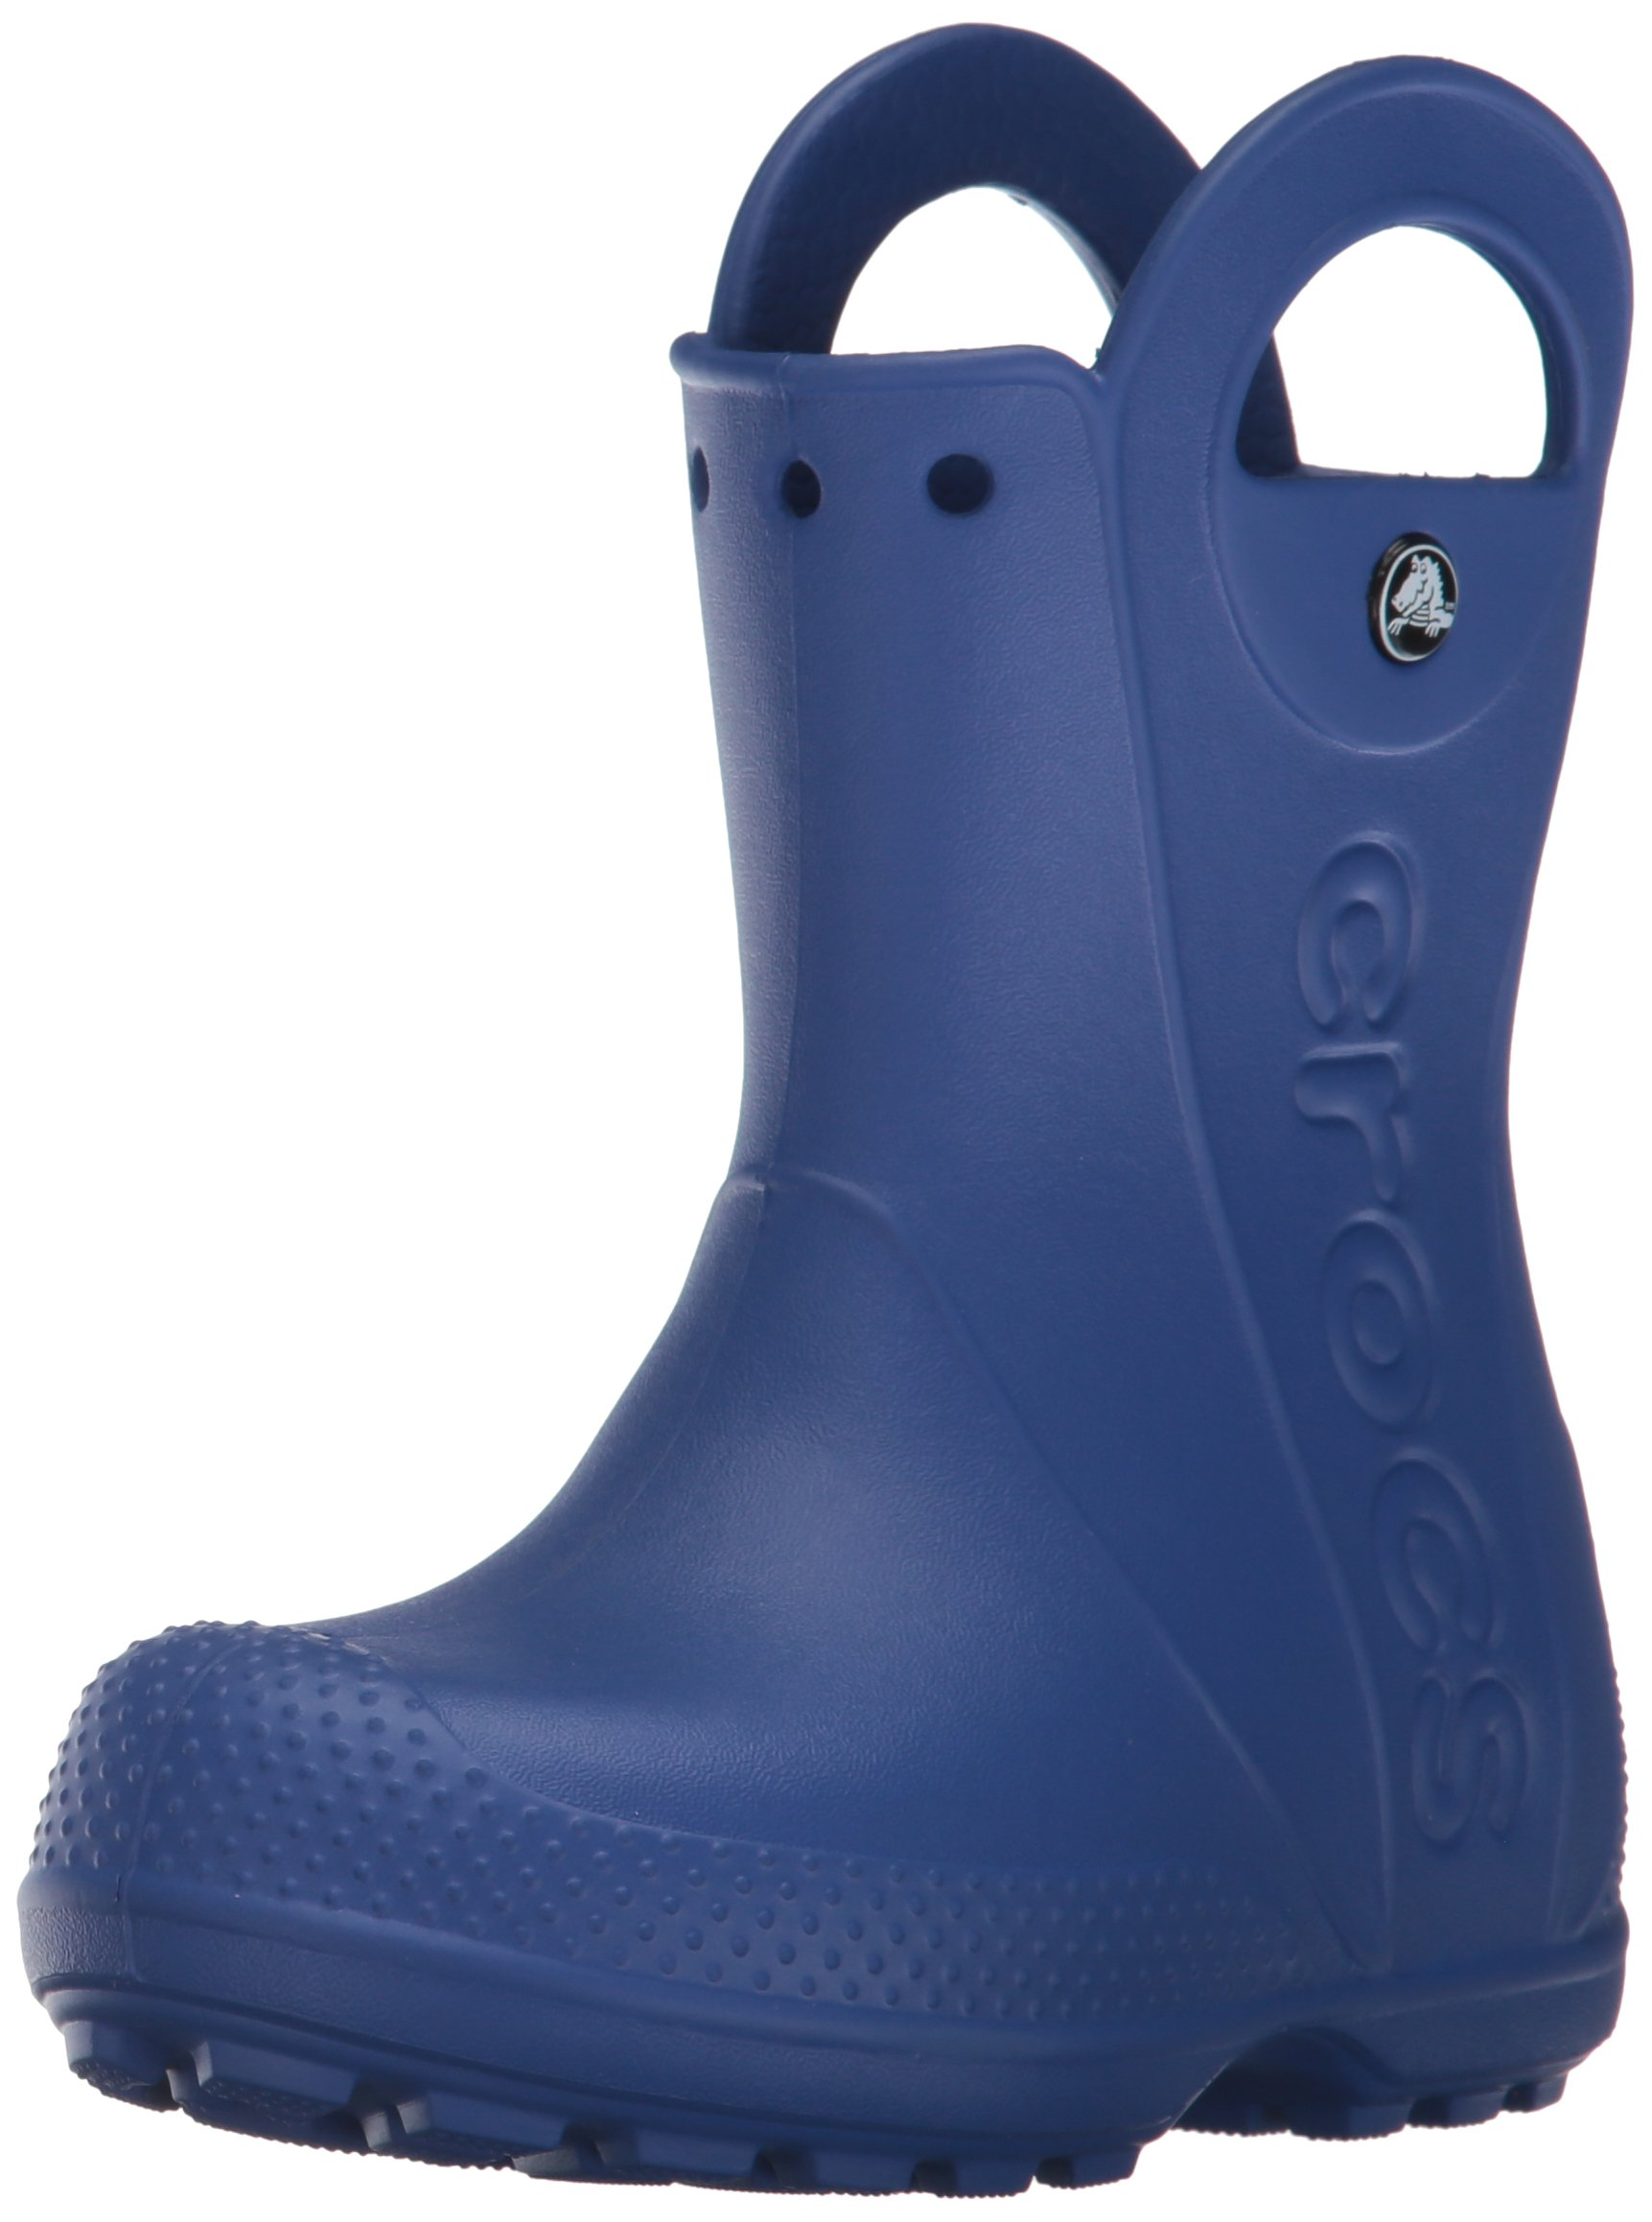 crocs Handle It Kids Rain Boot (Toddler/Little Kid), Cerulean Blue, 9 M US Toddler